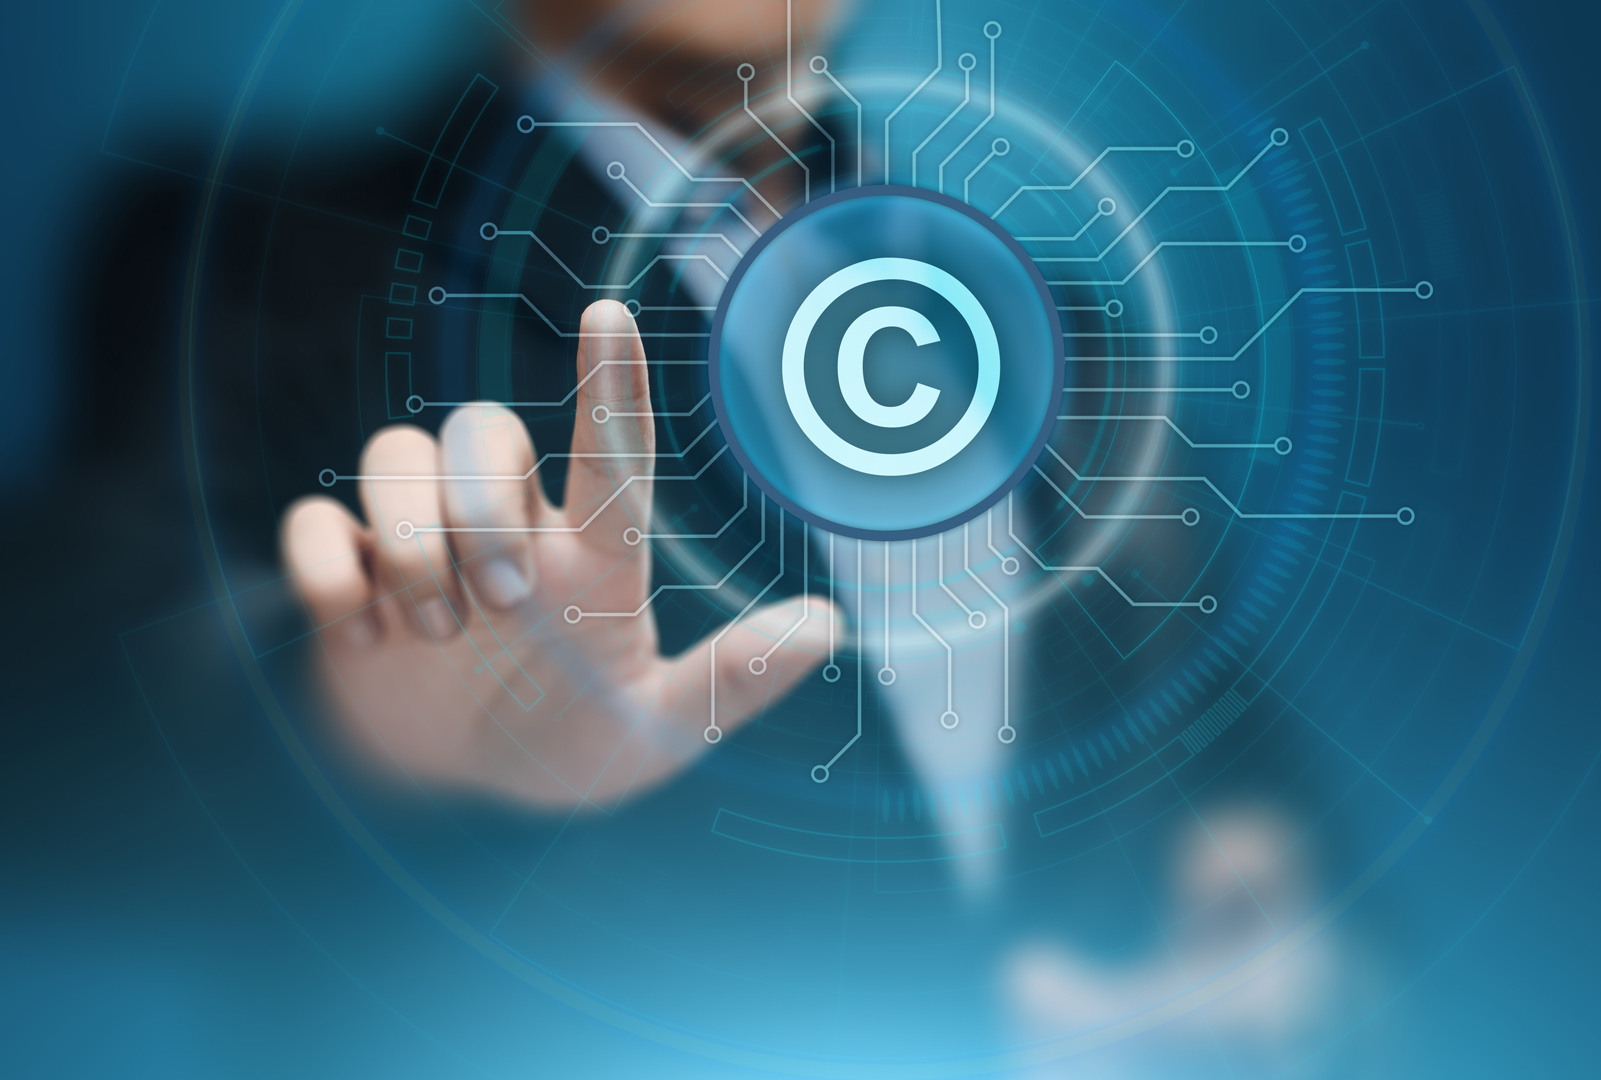 European Union votes to adopt 'upload filters' as part of internet copyright law